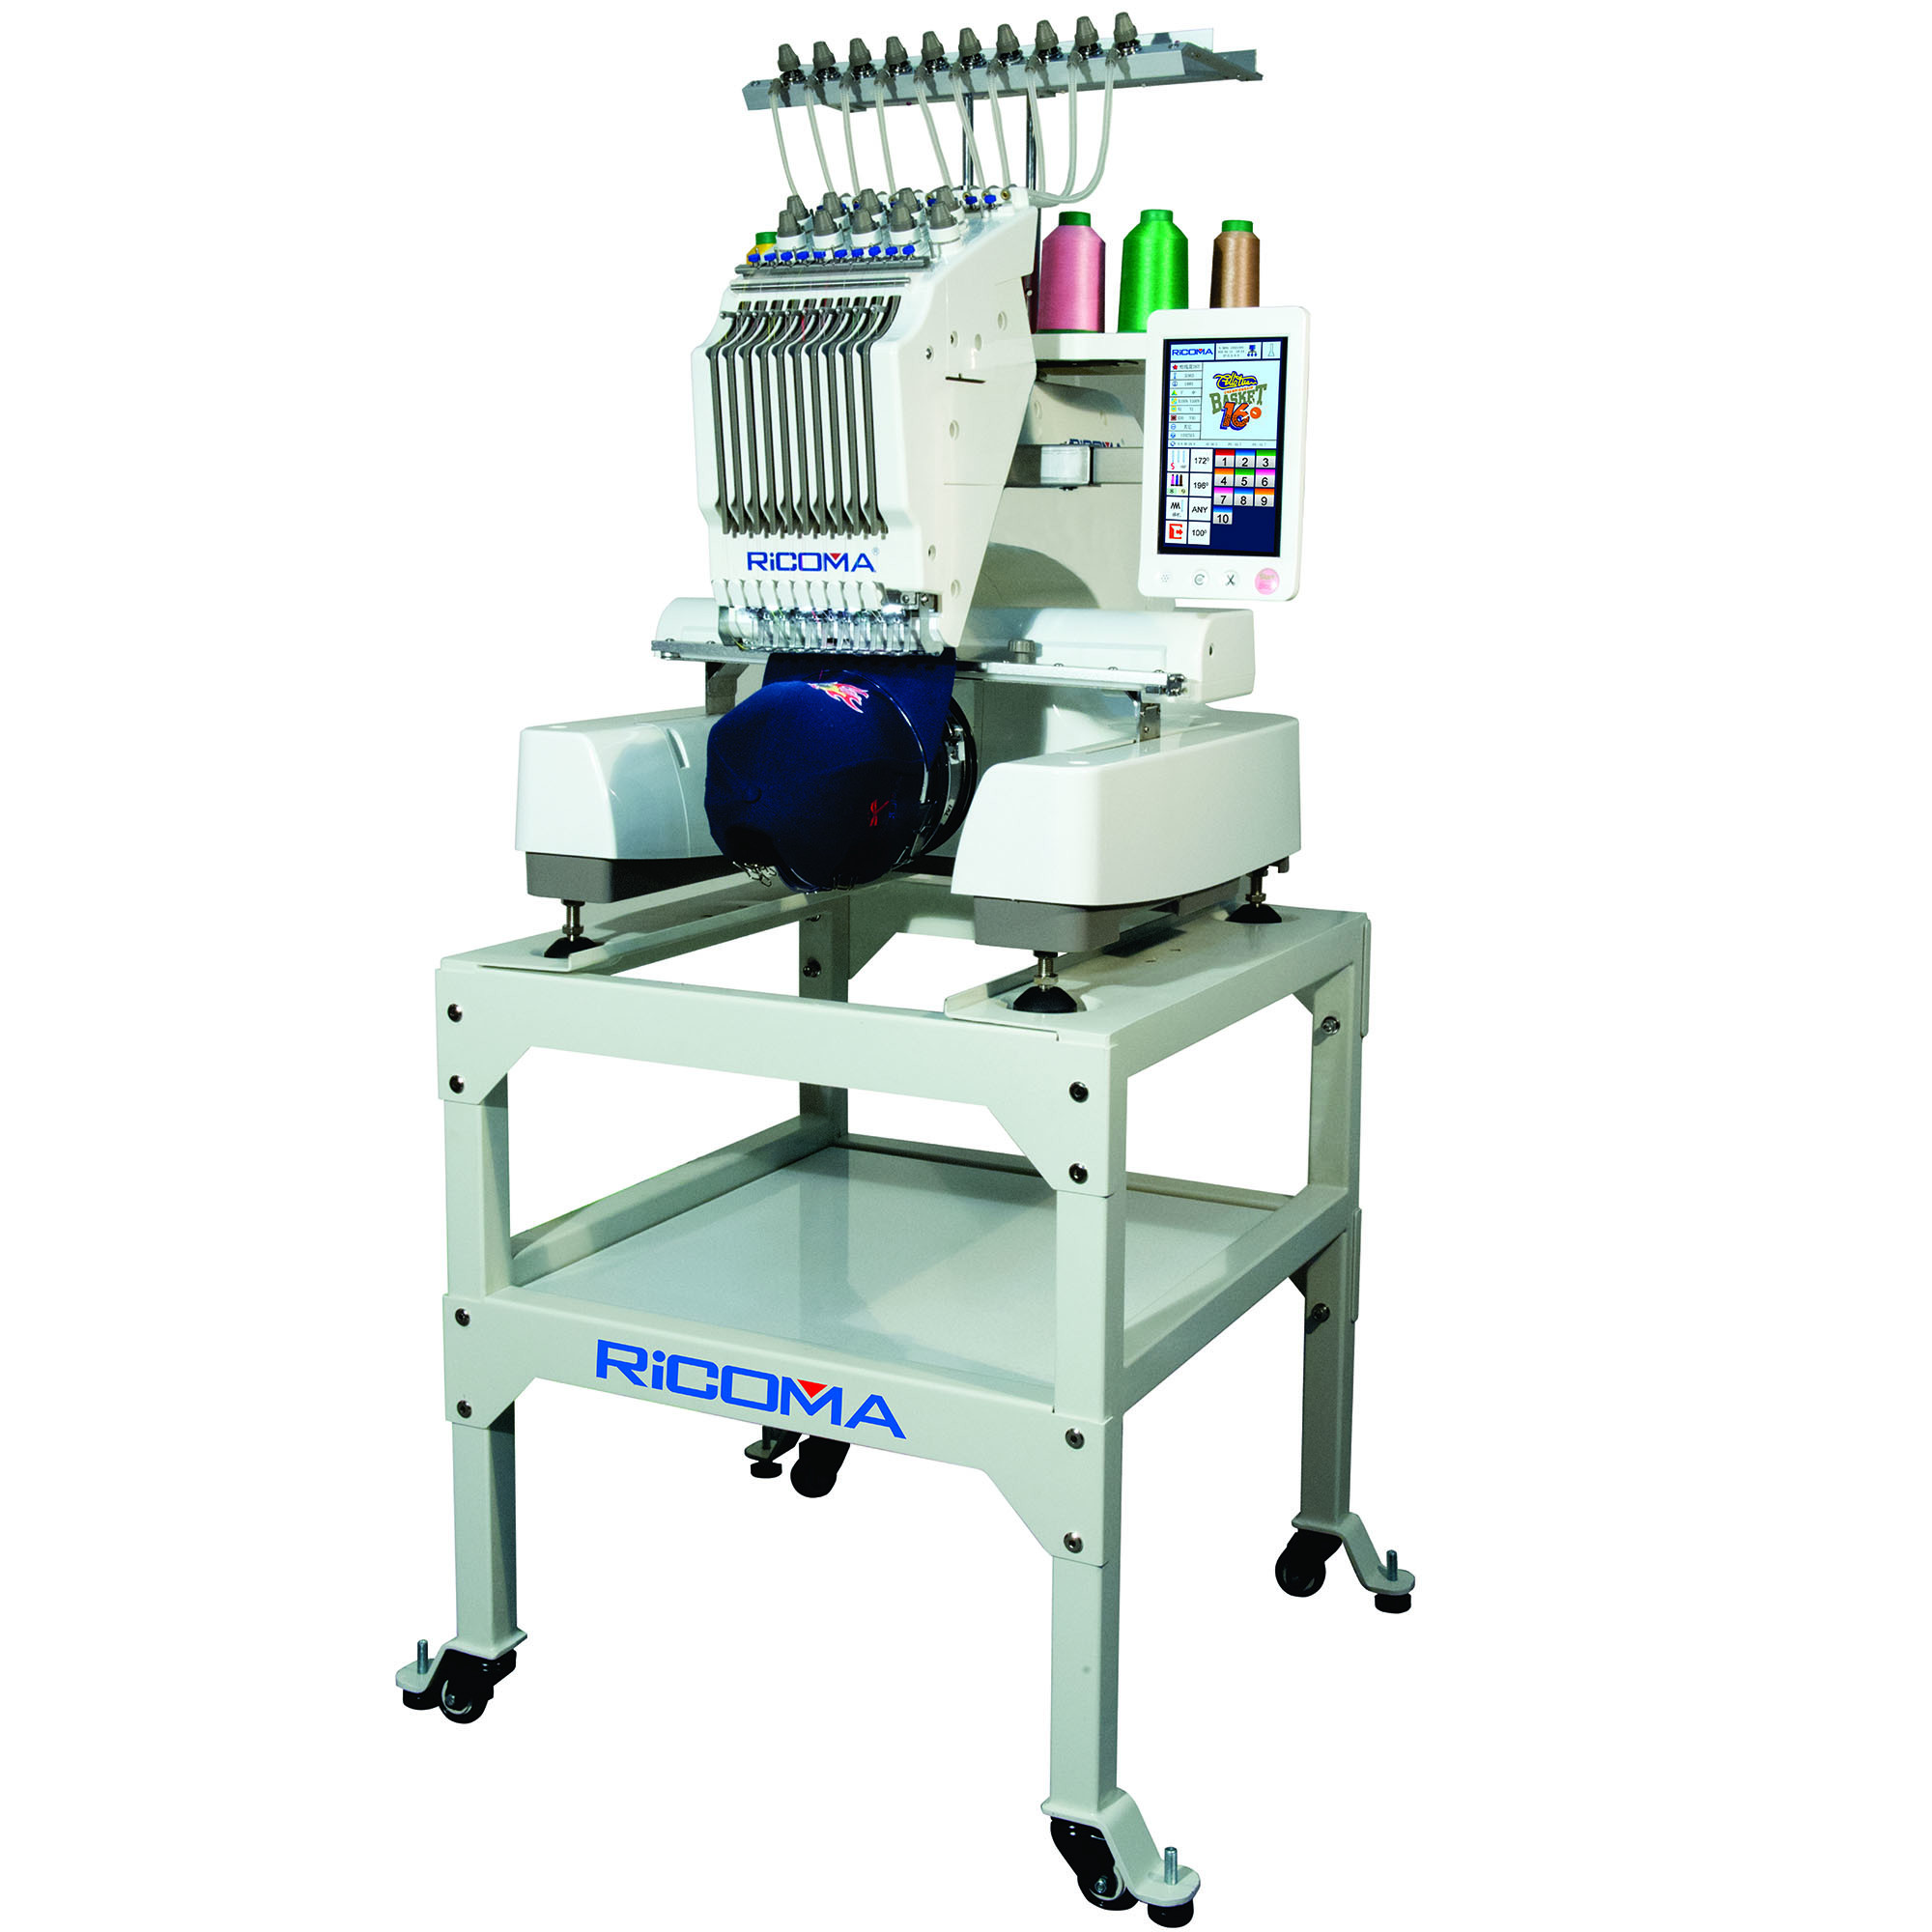 Used Embroidery Machines Fresh Ri A Embroidery Machine with Hd touch Screen 10 Needle Of Contemporary 41 Images Used Embroidery Machines